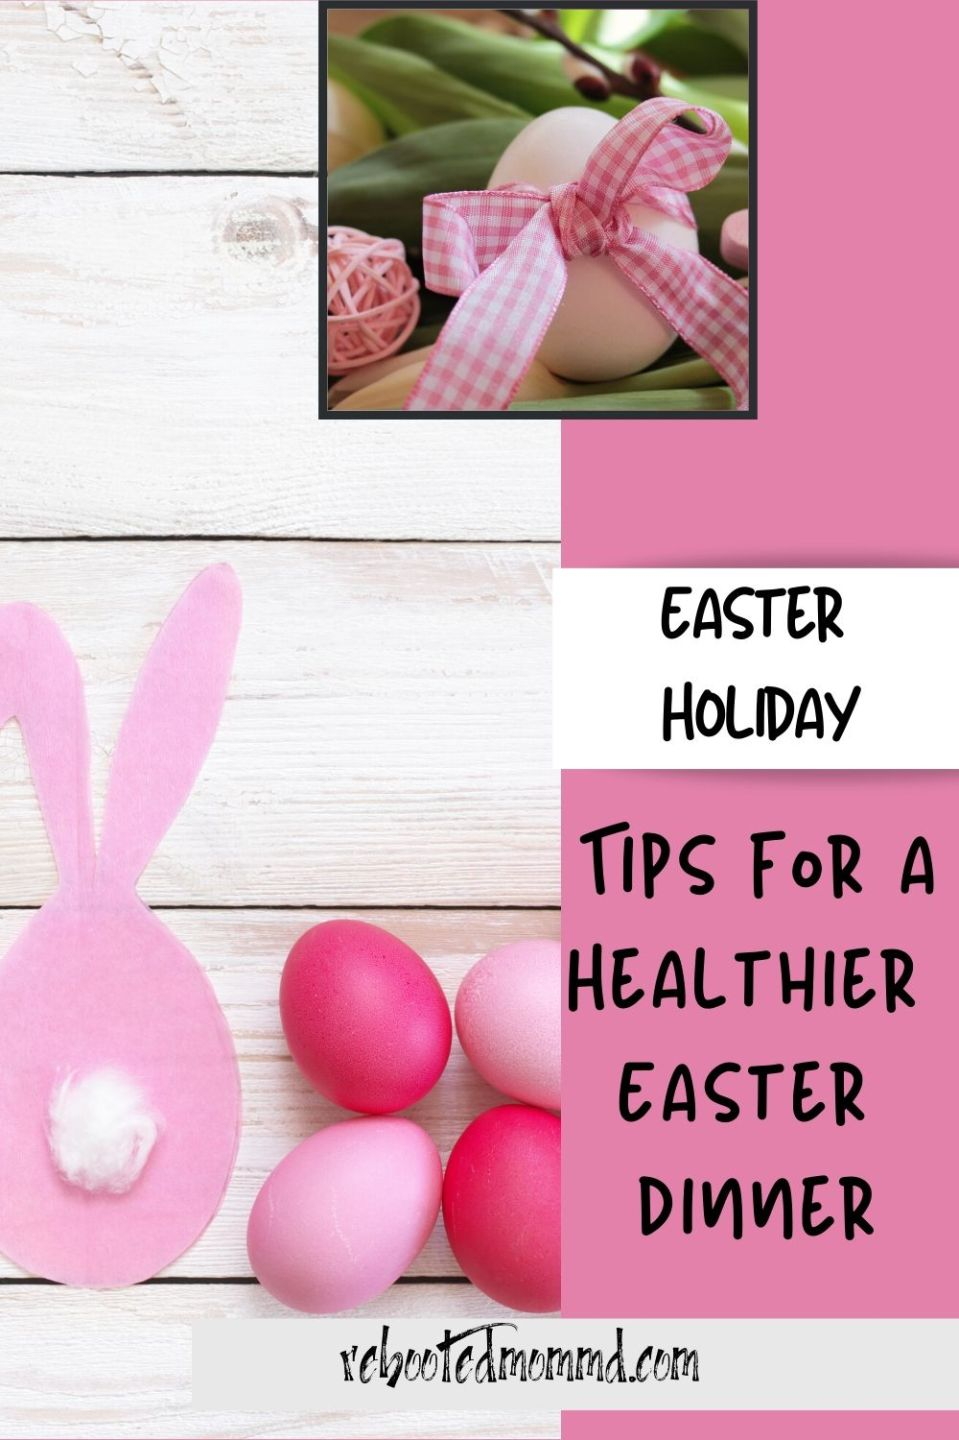 How to Have a Healthier Easter Dinner